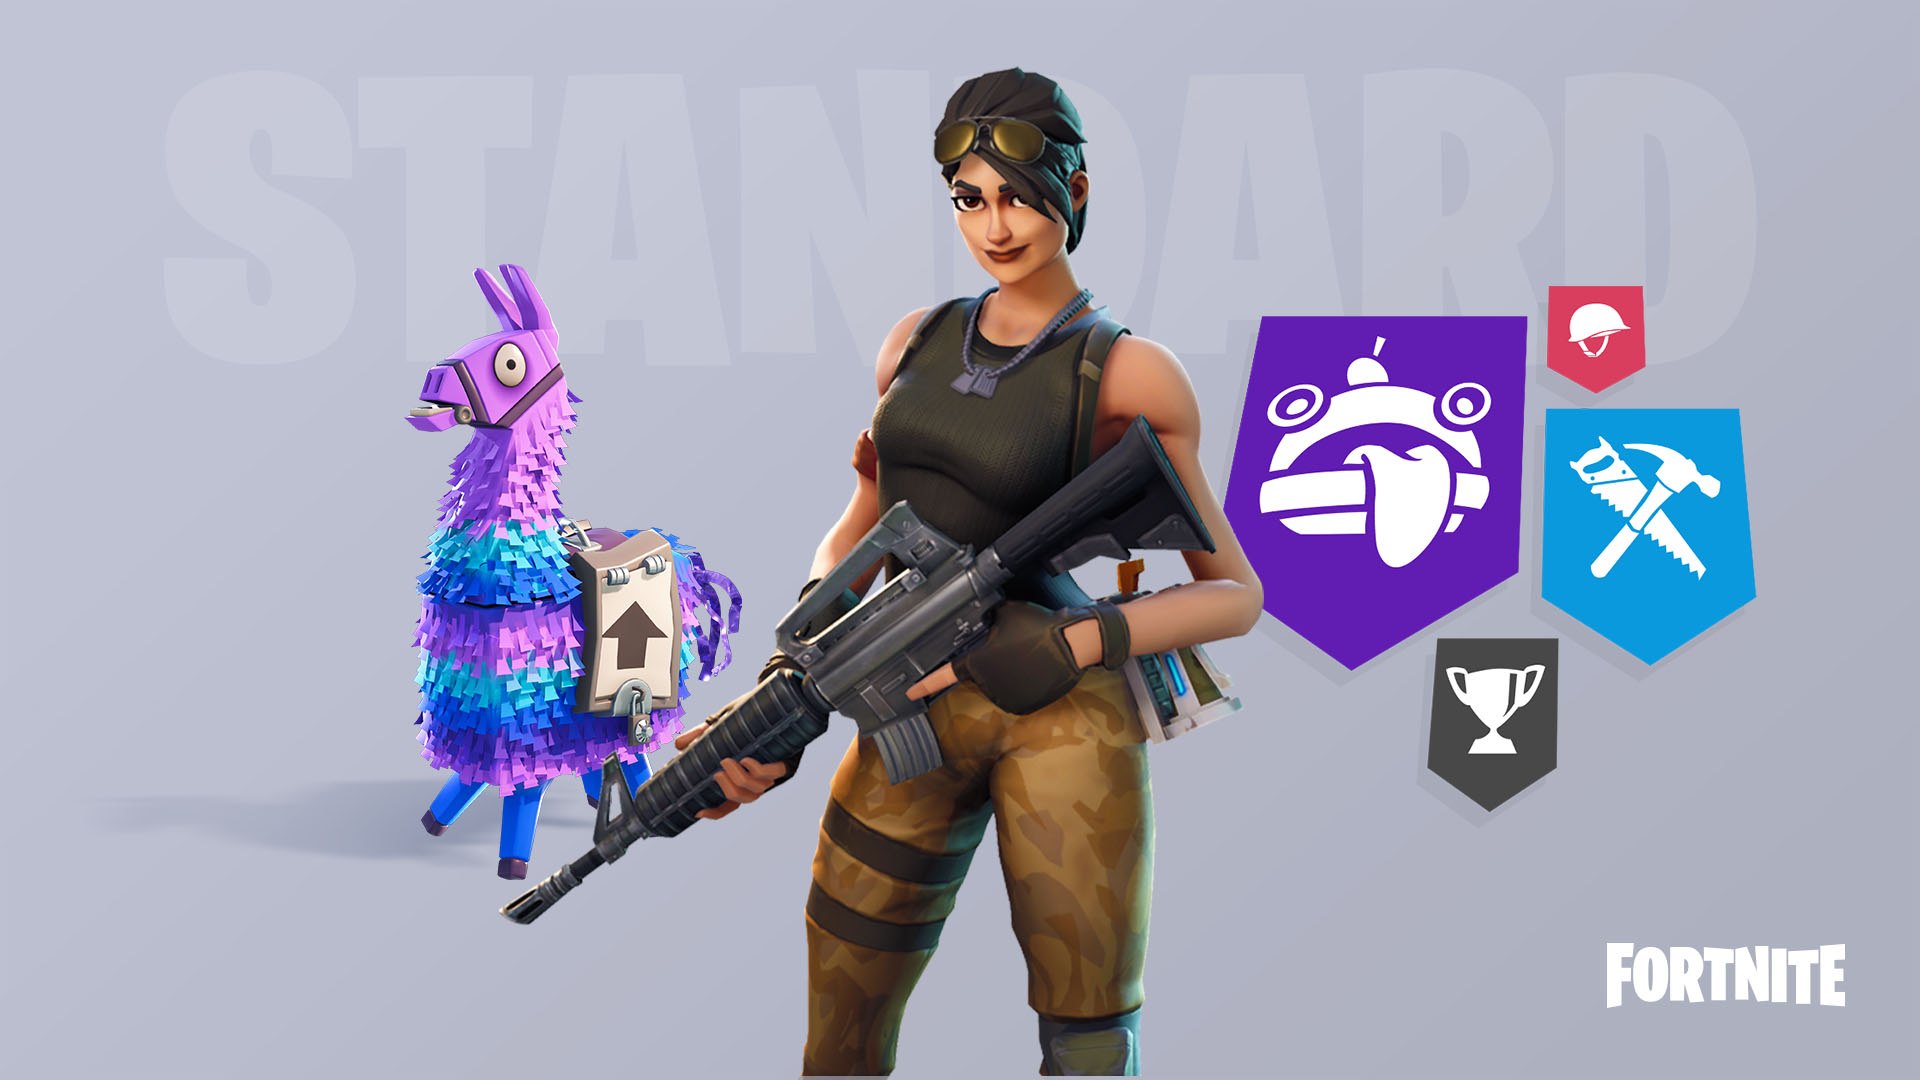 Fortnite%2Fblog%2Ffounders-packs-are-here%2FStandardFoundersPack_Fornite-1920x1080-482fb1dd7f93af7f3505e80ad6c8a6805bdba1f1